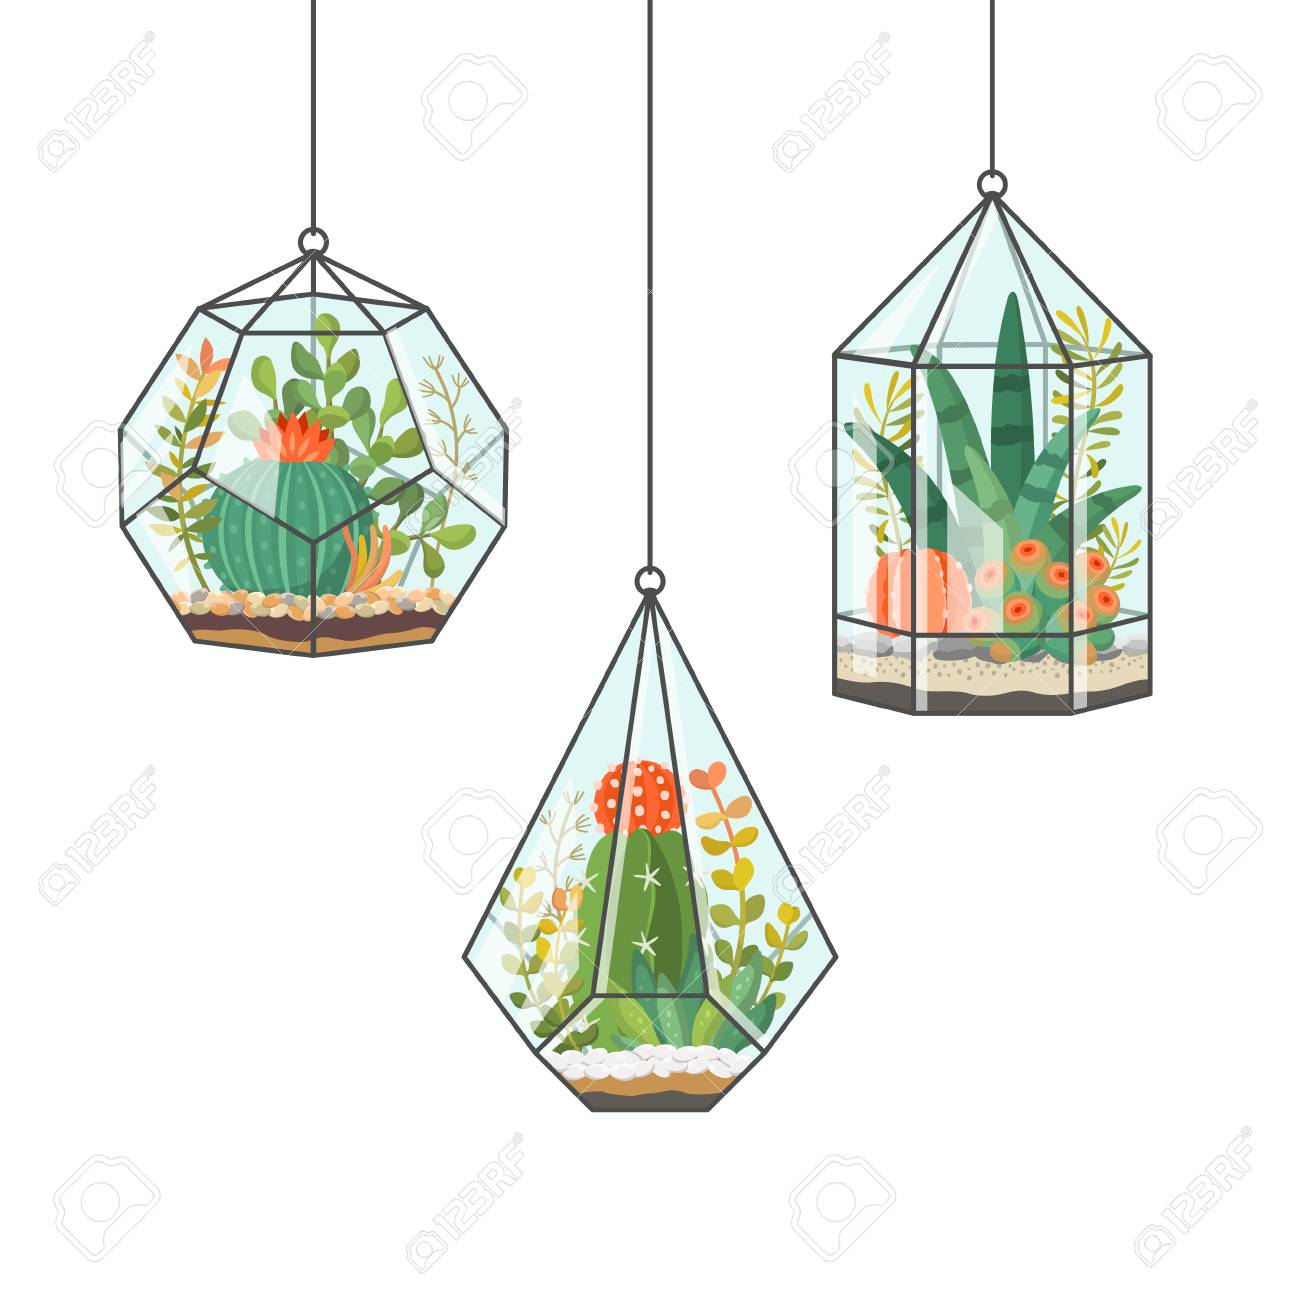 Tropical House Plants And Cactus In Hanging Terrariums Or Florariums Royalty Free Cliparts Vectors And Stock Illustration Image 111067136